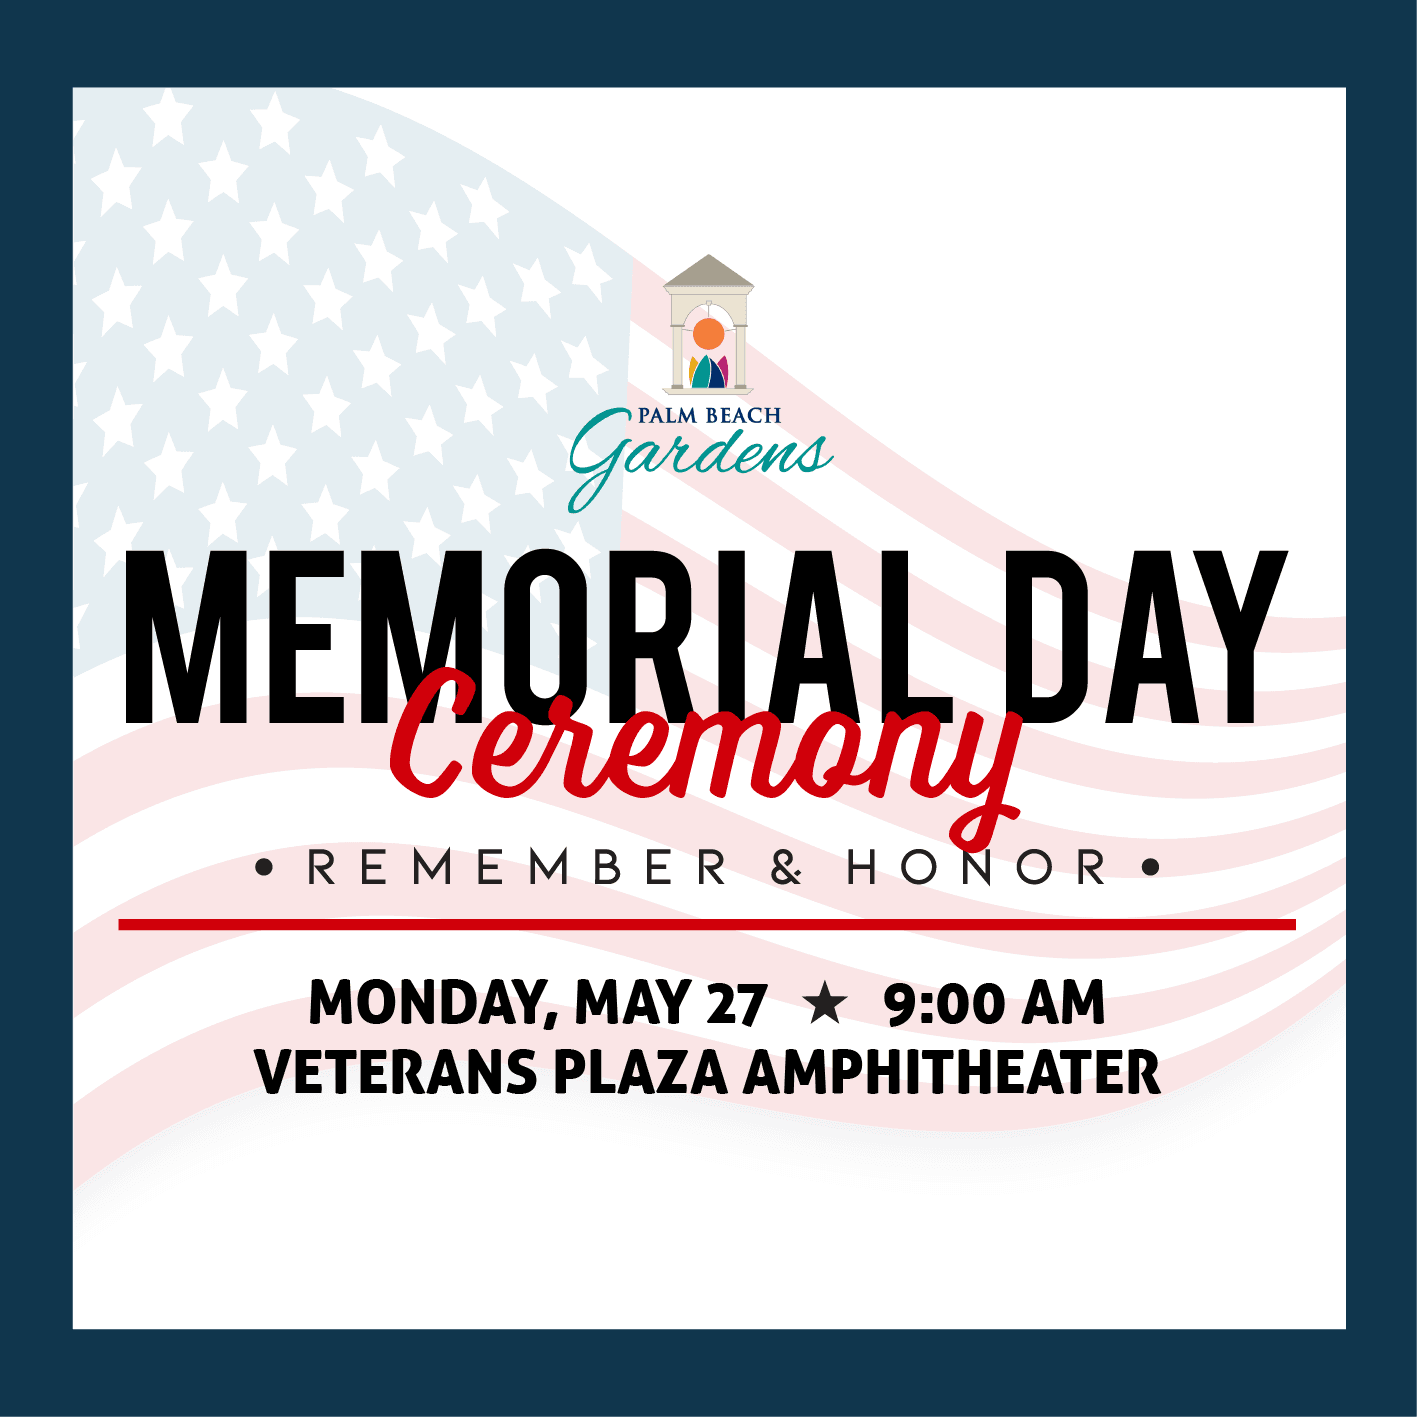 2019 Memorial Day Ceremony, May 27 at 9 a.m. at Veterans Plaza Amphitheater.